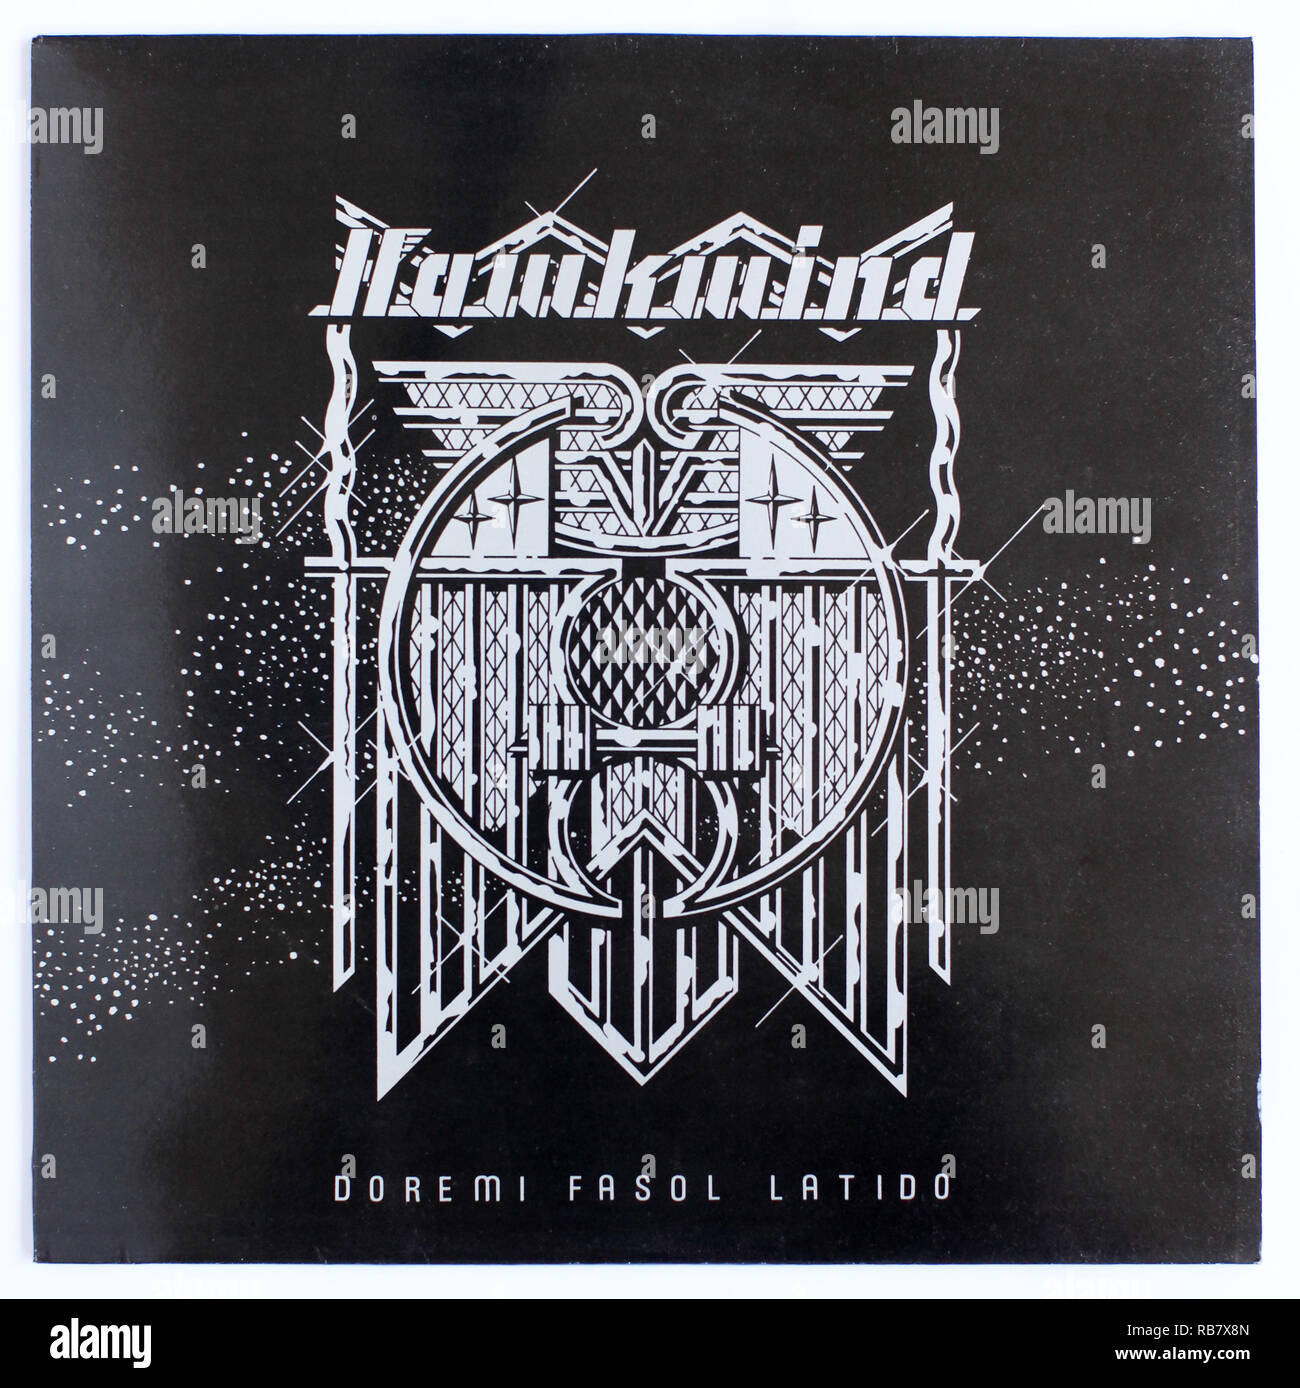 The cover of Doremi Fasol Latido by Hawkwind on United Artists - Stock Image